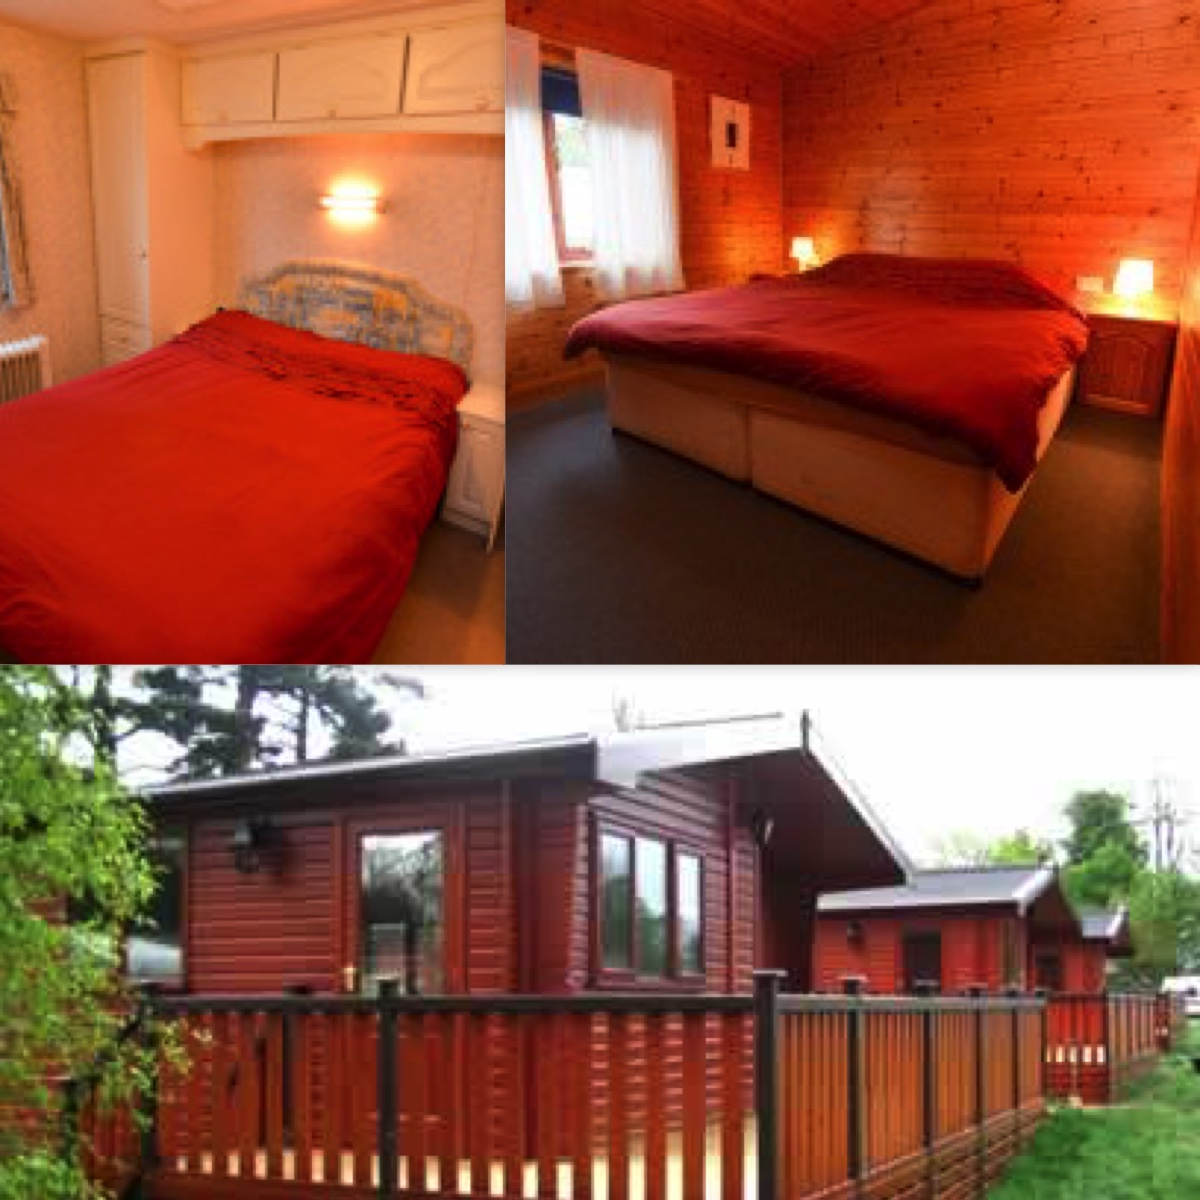 Cabins & Mobile Homes - The site has a selection of cosy pine cabins and mobile homes, for up to six people.They have shared kitchen areas and some en suite rooms. Prices start at £72 for the weekend for a small double in a mobile home. These places are limited and almost sold out.